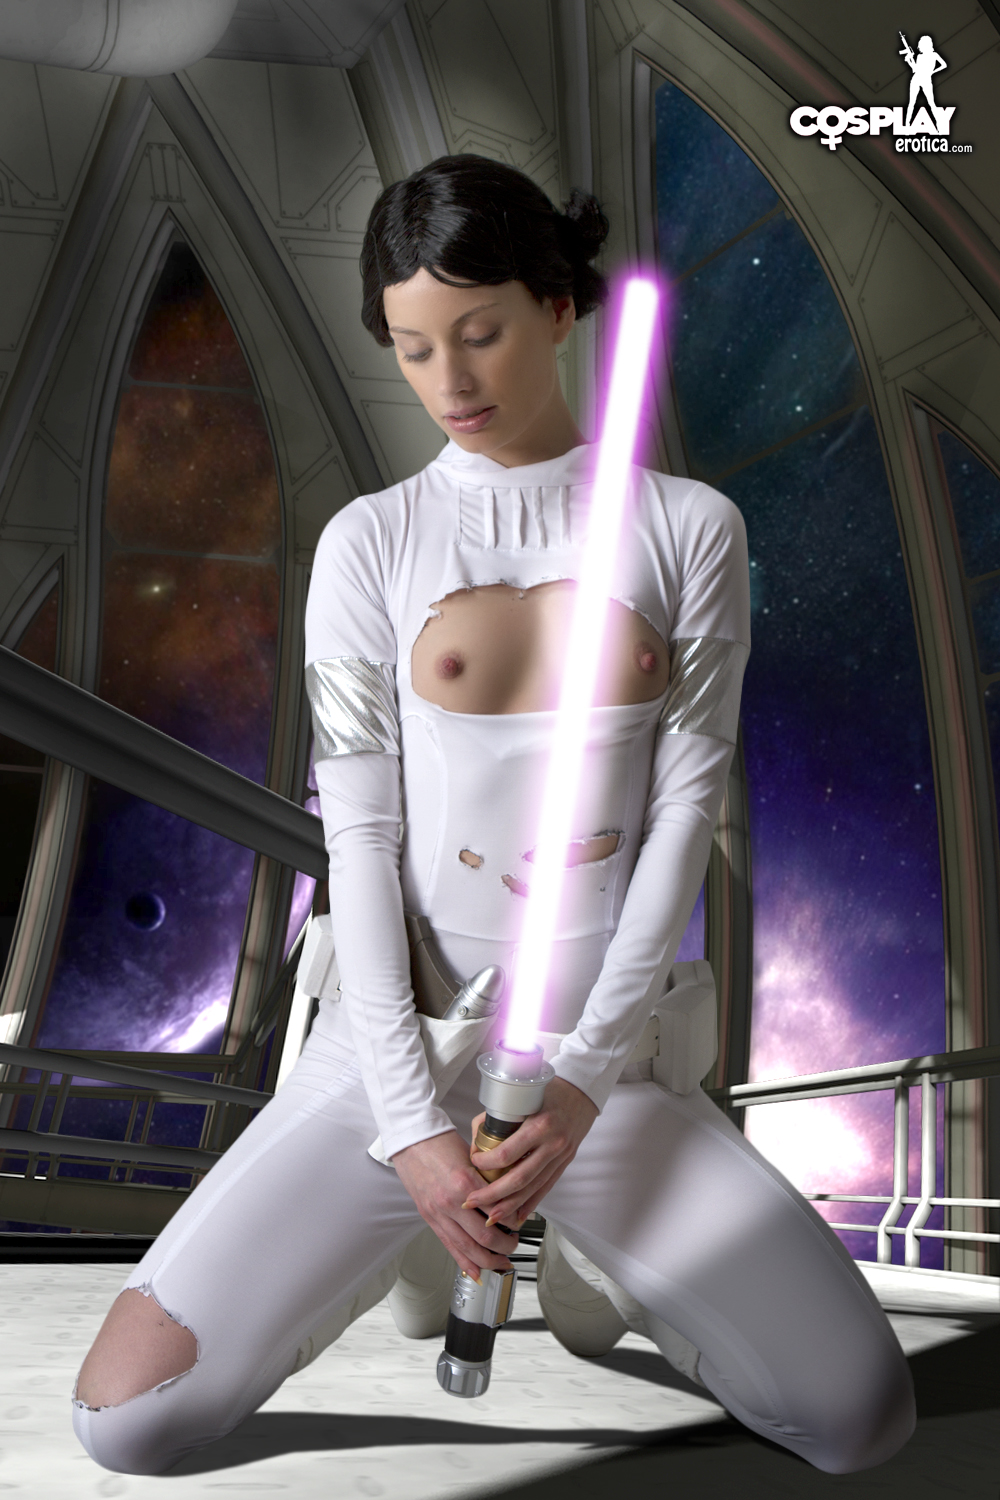 Star wars cosplay porn videos nude gallery